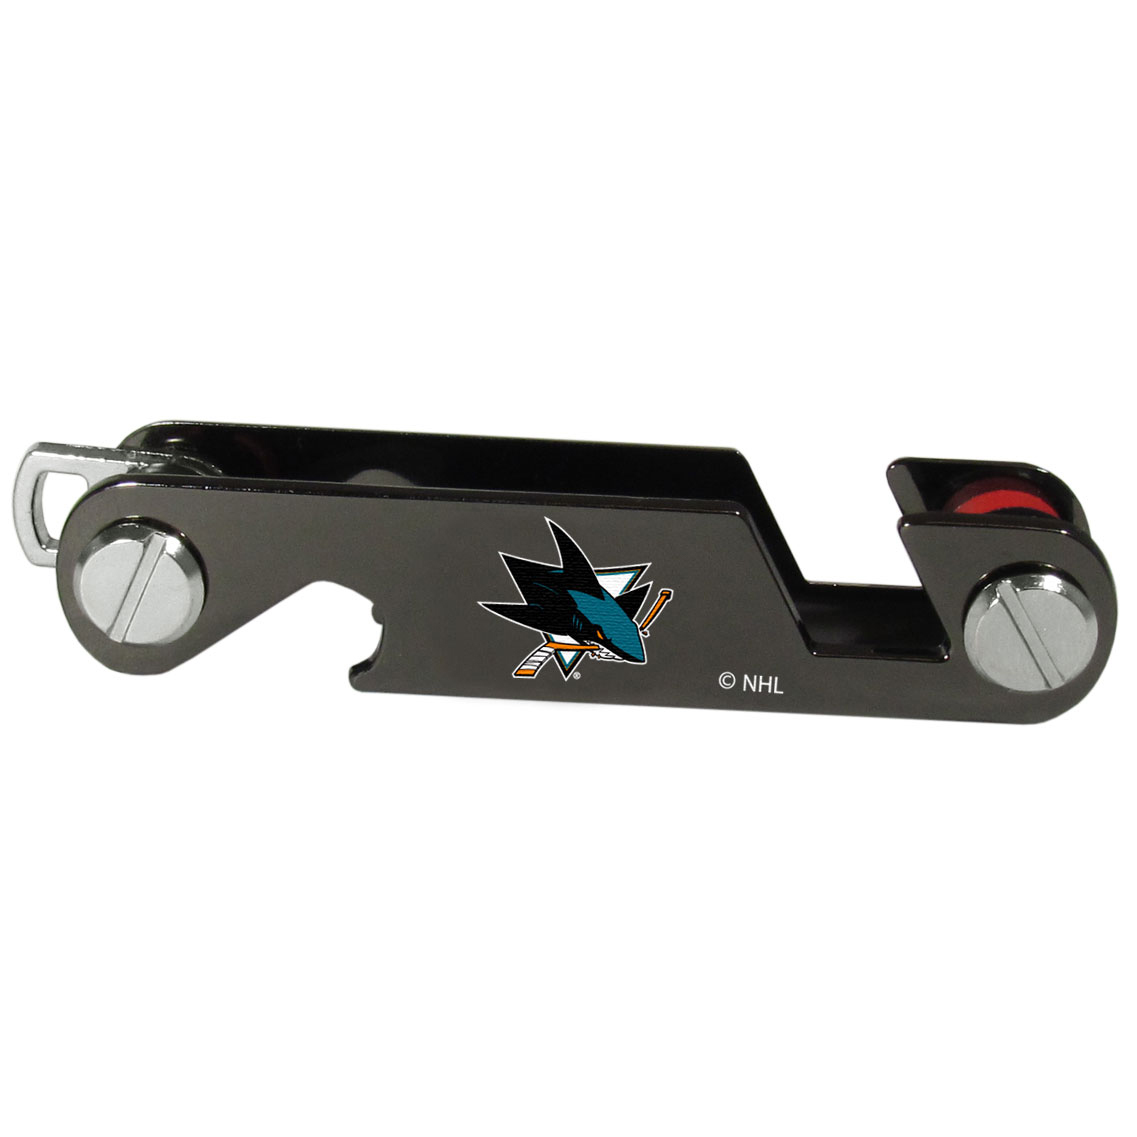 San Jose Sharks® Key Organizer - This innovative key organizer stores your keys in a compact, easy to access bundle with Swiss style engineering. With the San Jose Sharks® key organizer you can load up to 10 keys that zipper back into the organizer so that you never have to deal with keys poking you in your pocket, damaging your purse or simply creating a ton of noise. There is a handy loop piece to attach your larger car key or fob.